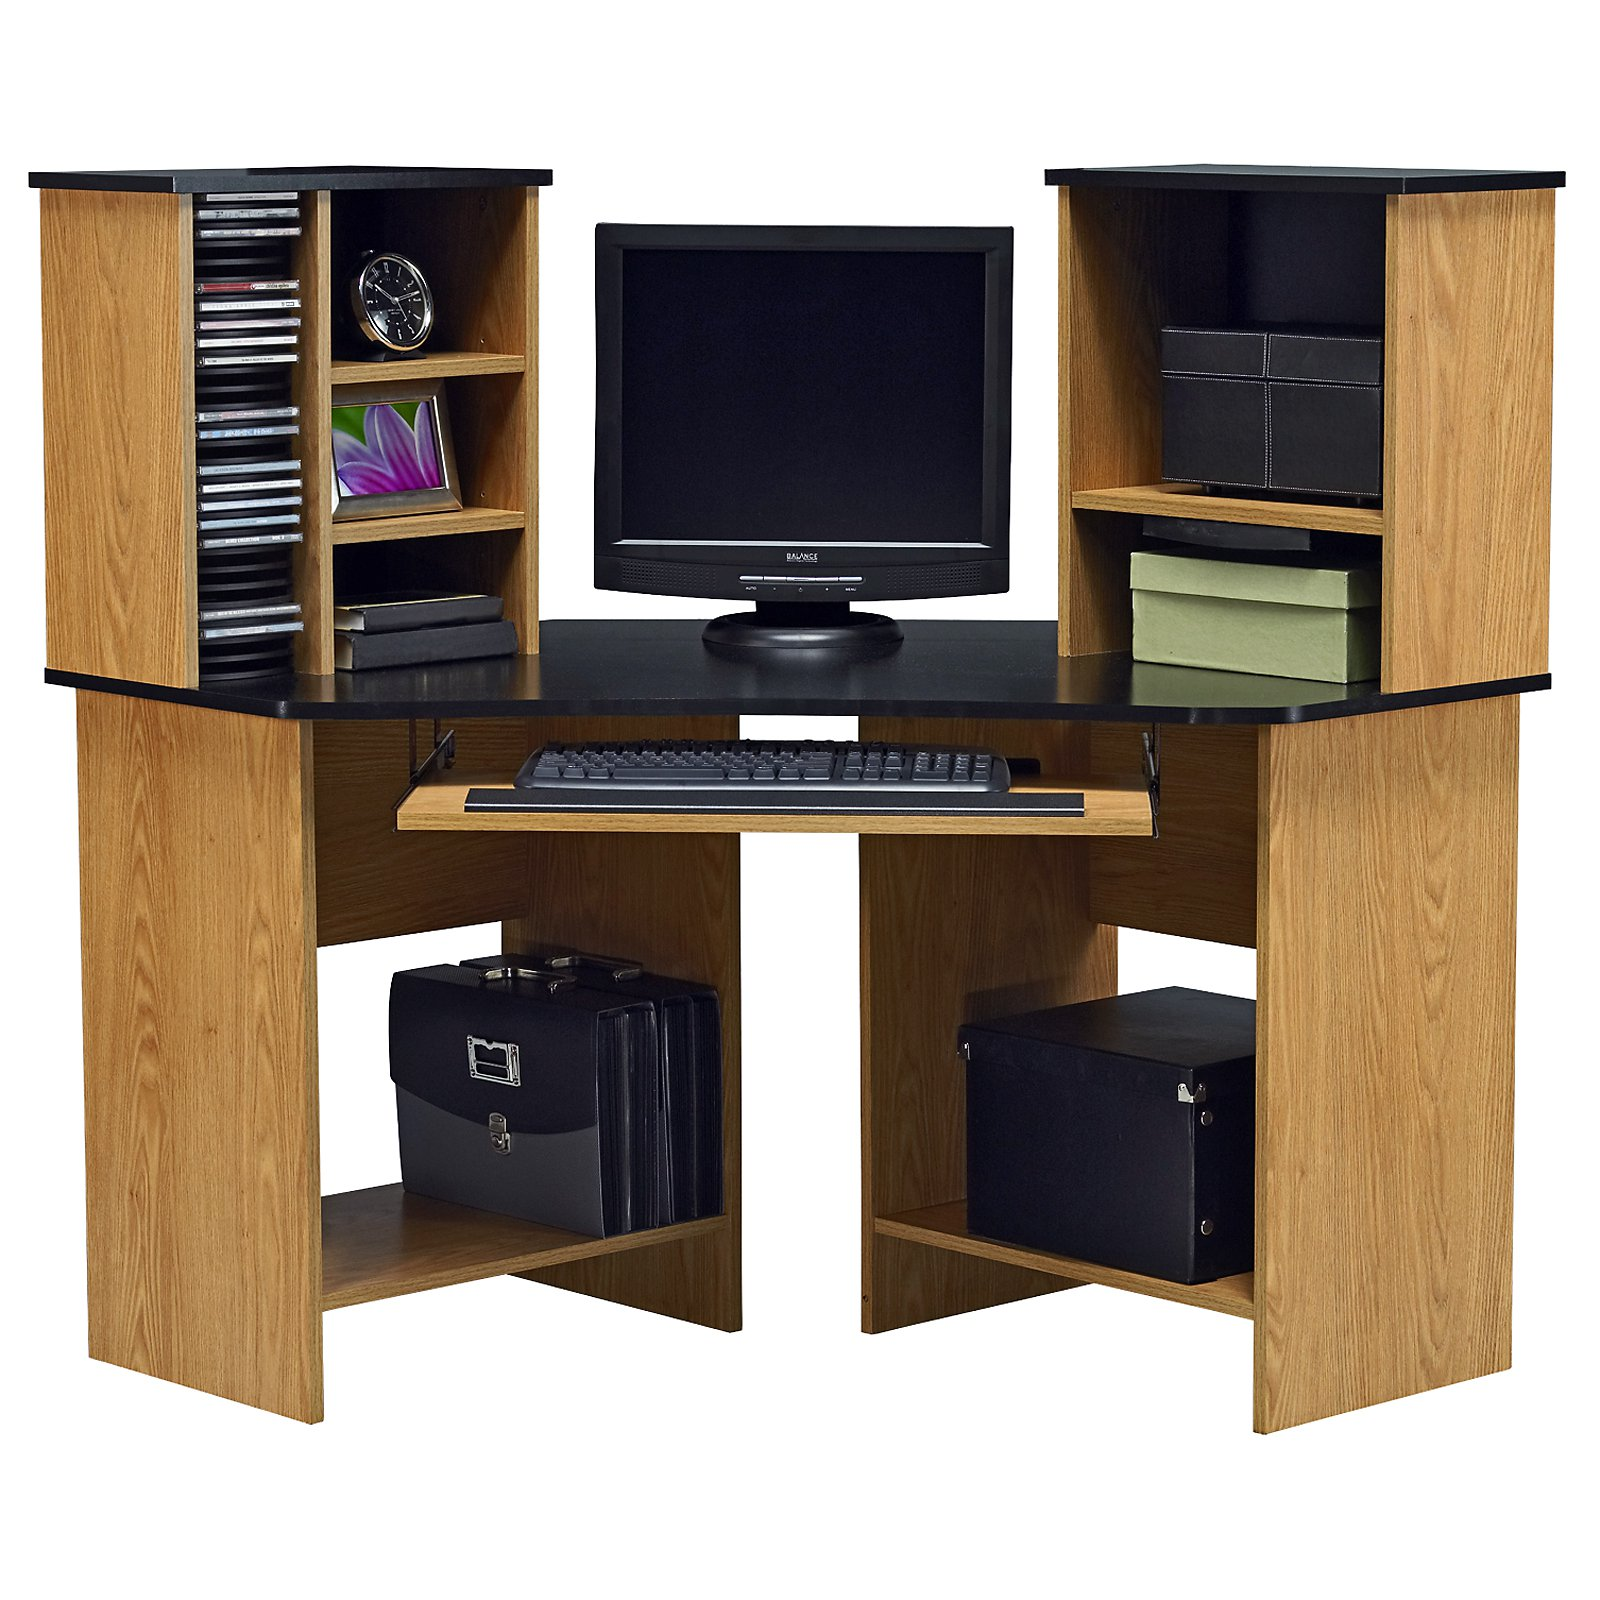 Elegant Ameriwood Corner Computer Desk and Hutch-Oak and Black at Hayneedle corner computer desk with hutch